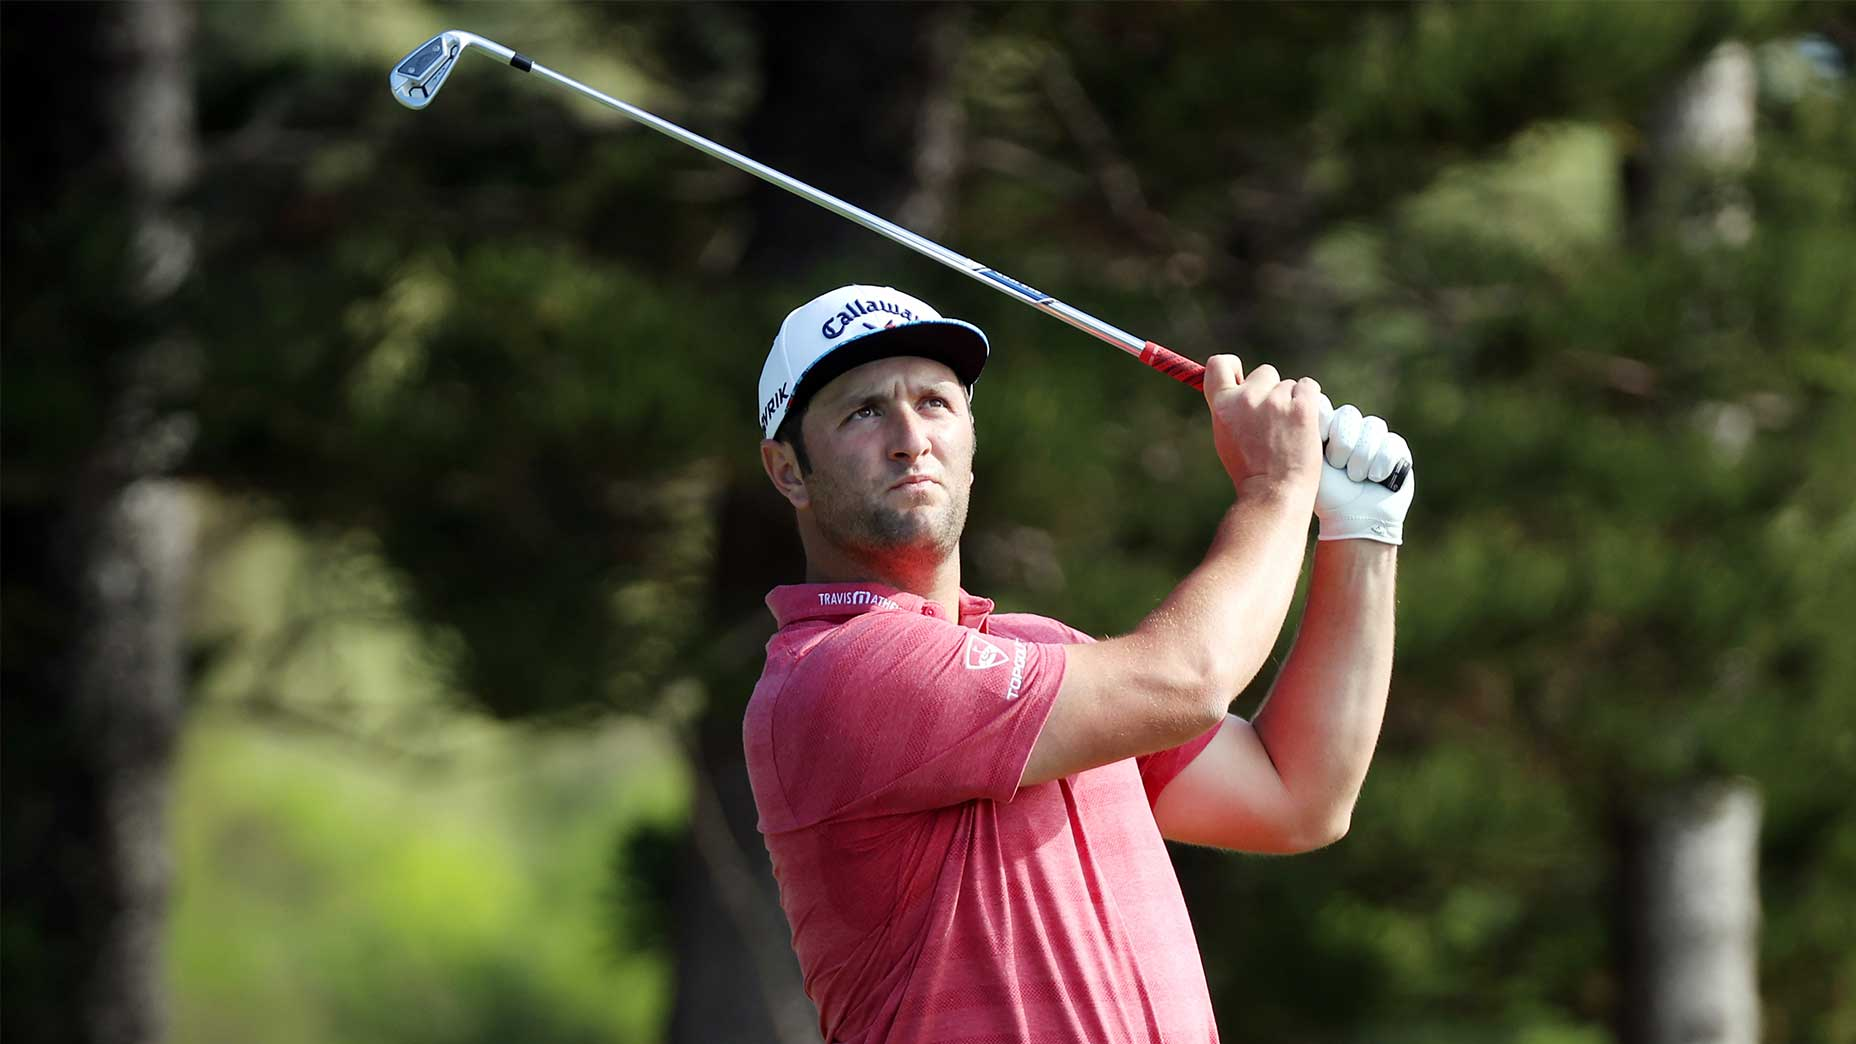 jon Rahm hits a shot at the 2021 sentry tournament of champions.